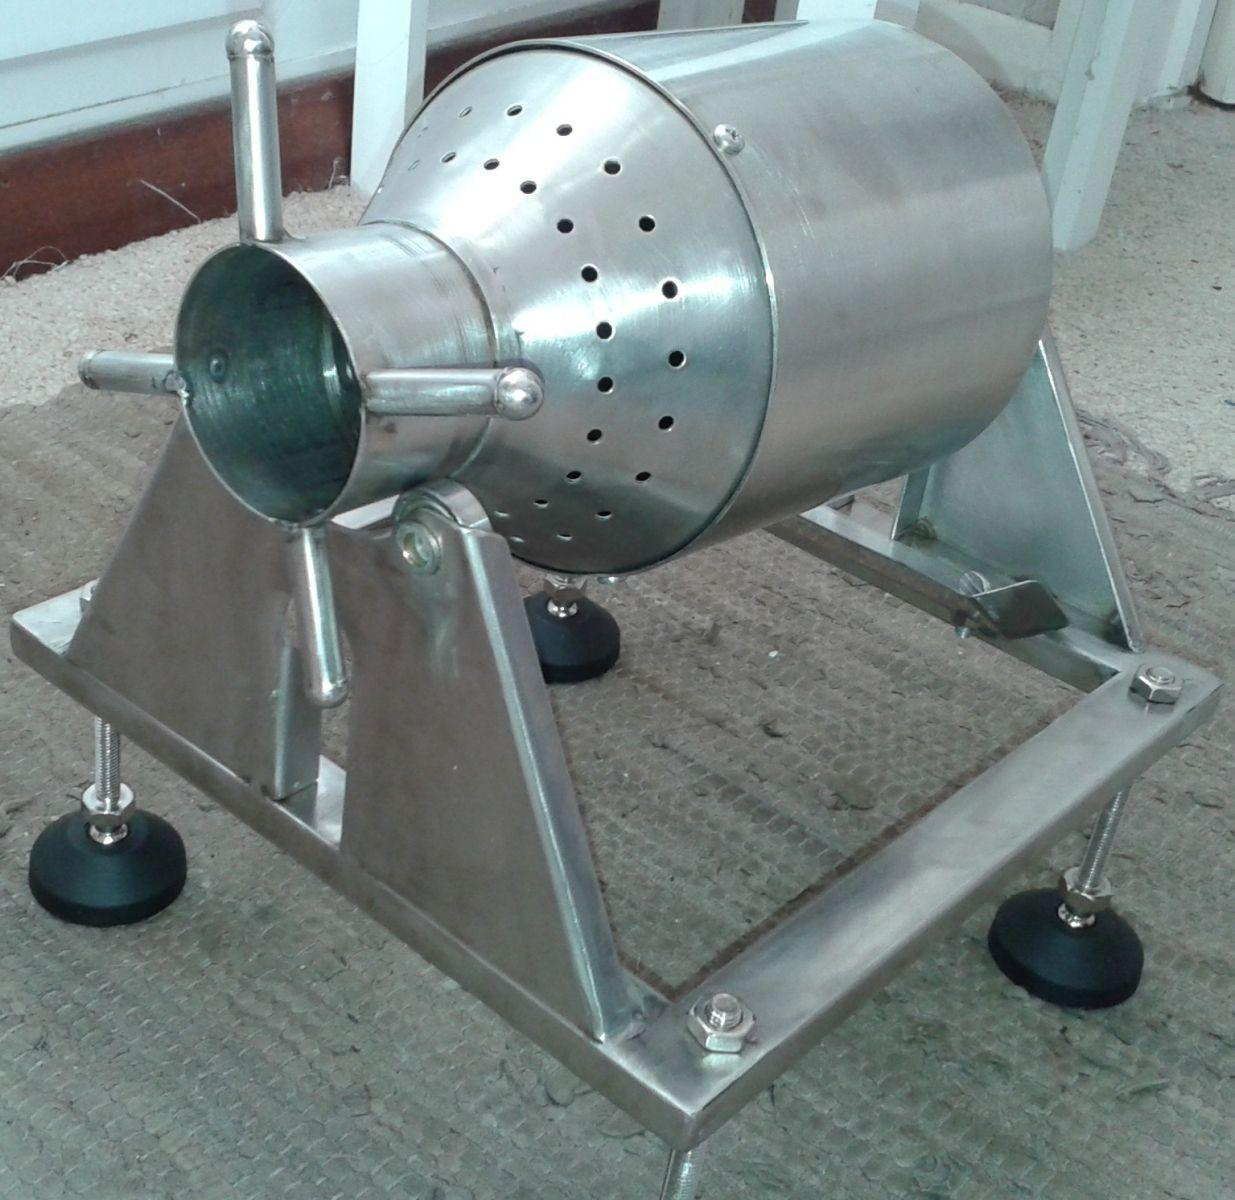 Home Coffee Roaster Hub Classified product photo for [For Sale] Coffee Roaster - Stainless 1